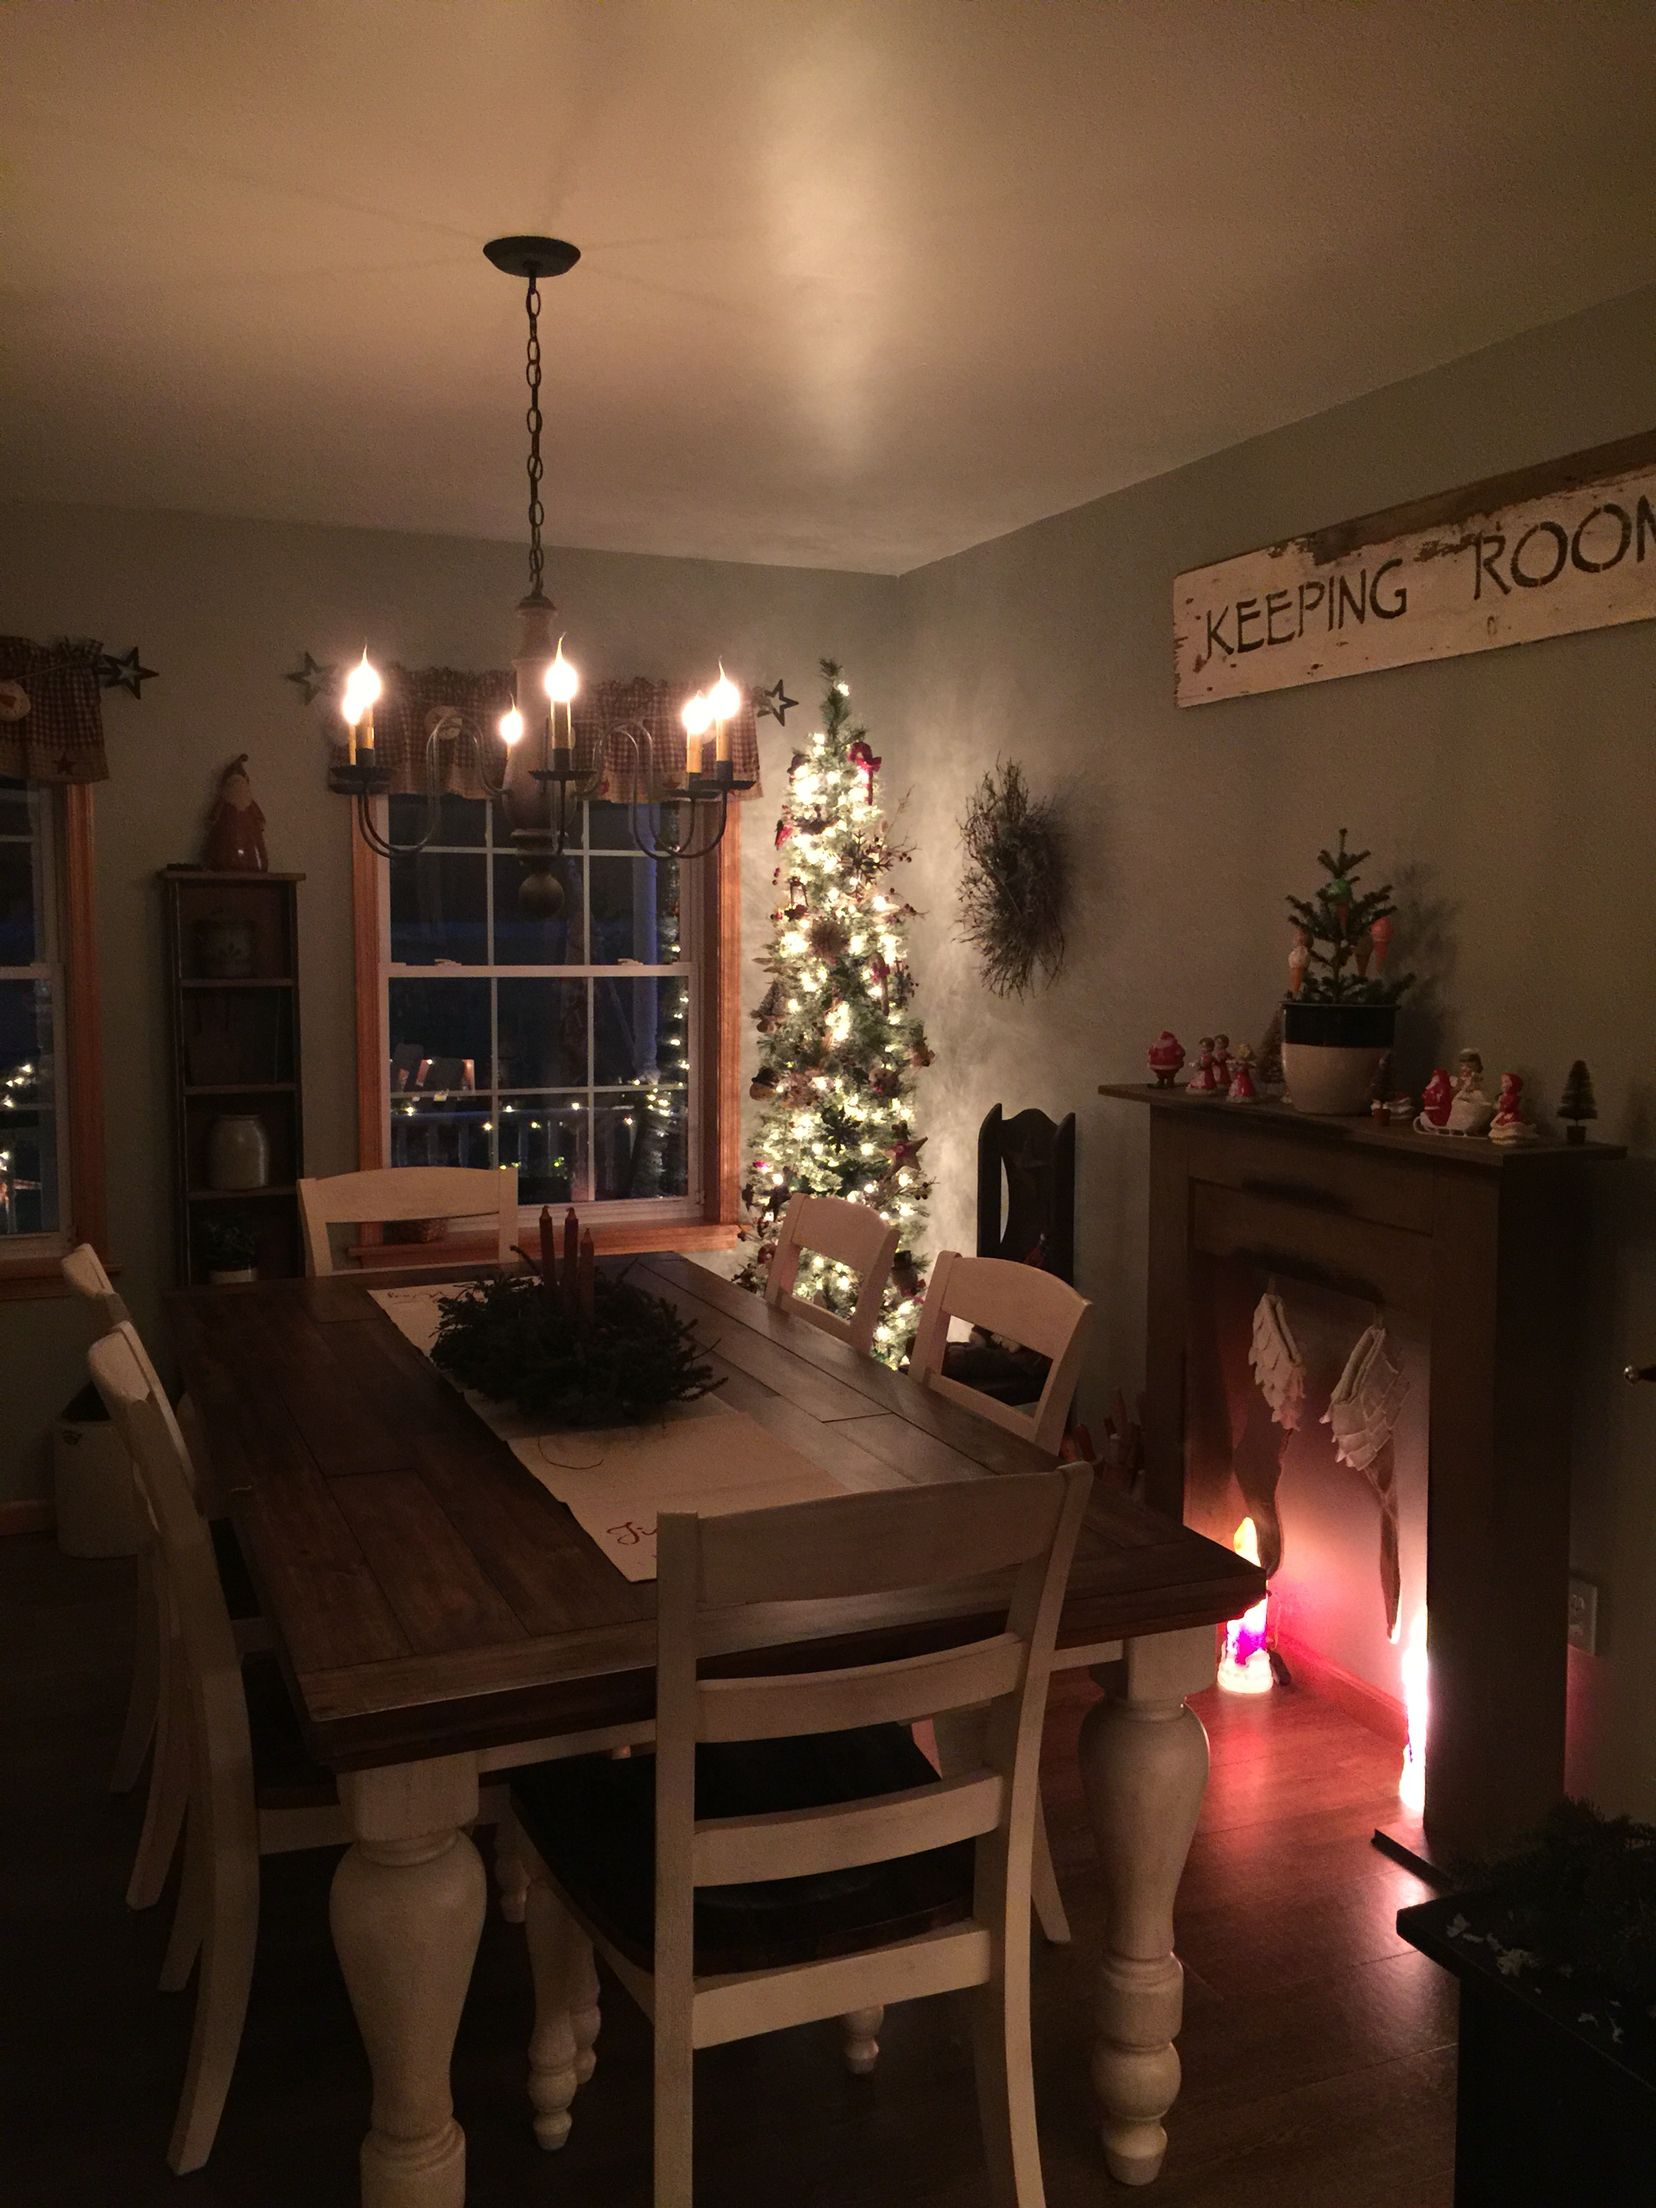 Our new dining room in our new home | Country Decor | Pinterest ...